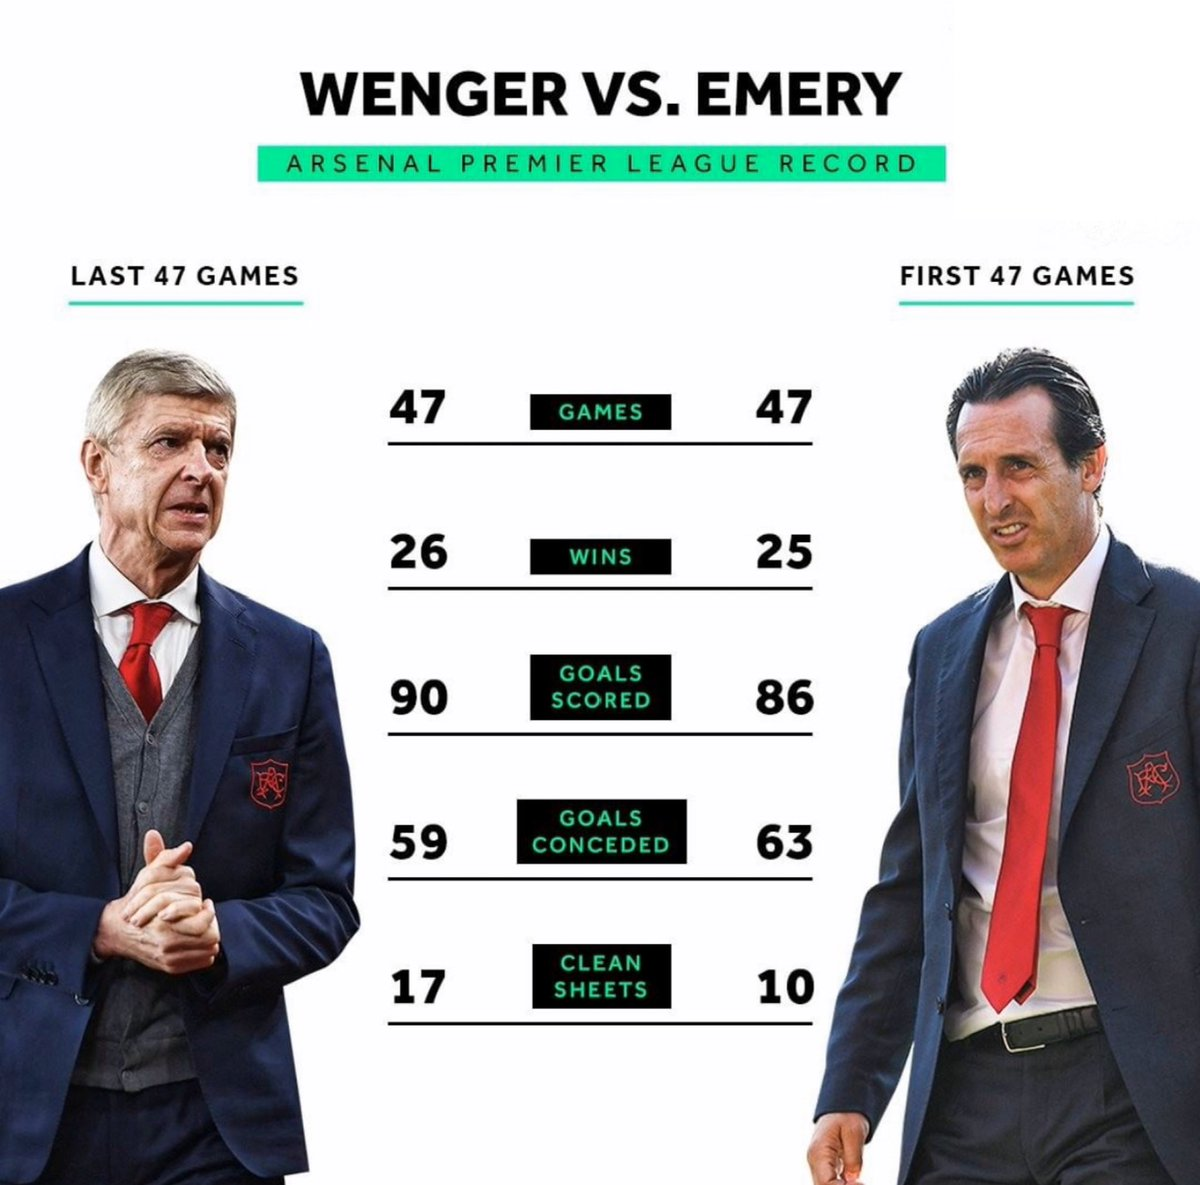 This is not good viewing, but for all of you saying bring back Wenger, he was just as bad and nothing will change that, I want to give Emery until the end of the season but if this carries on he won't make it that far.